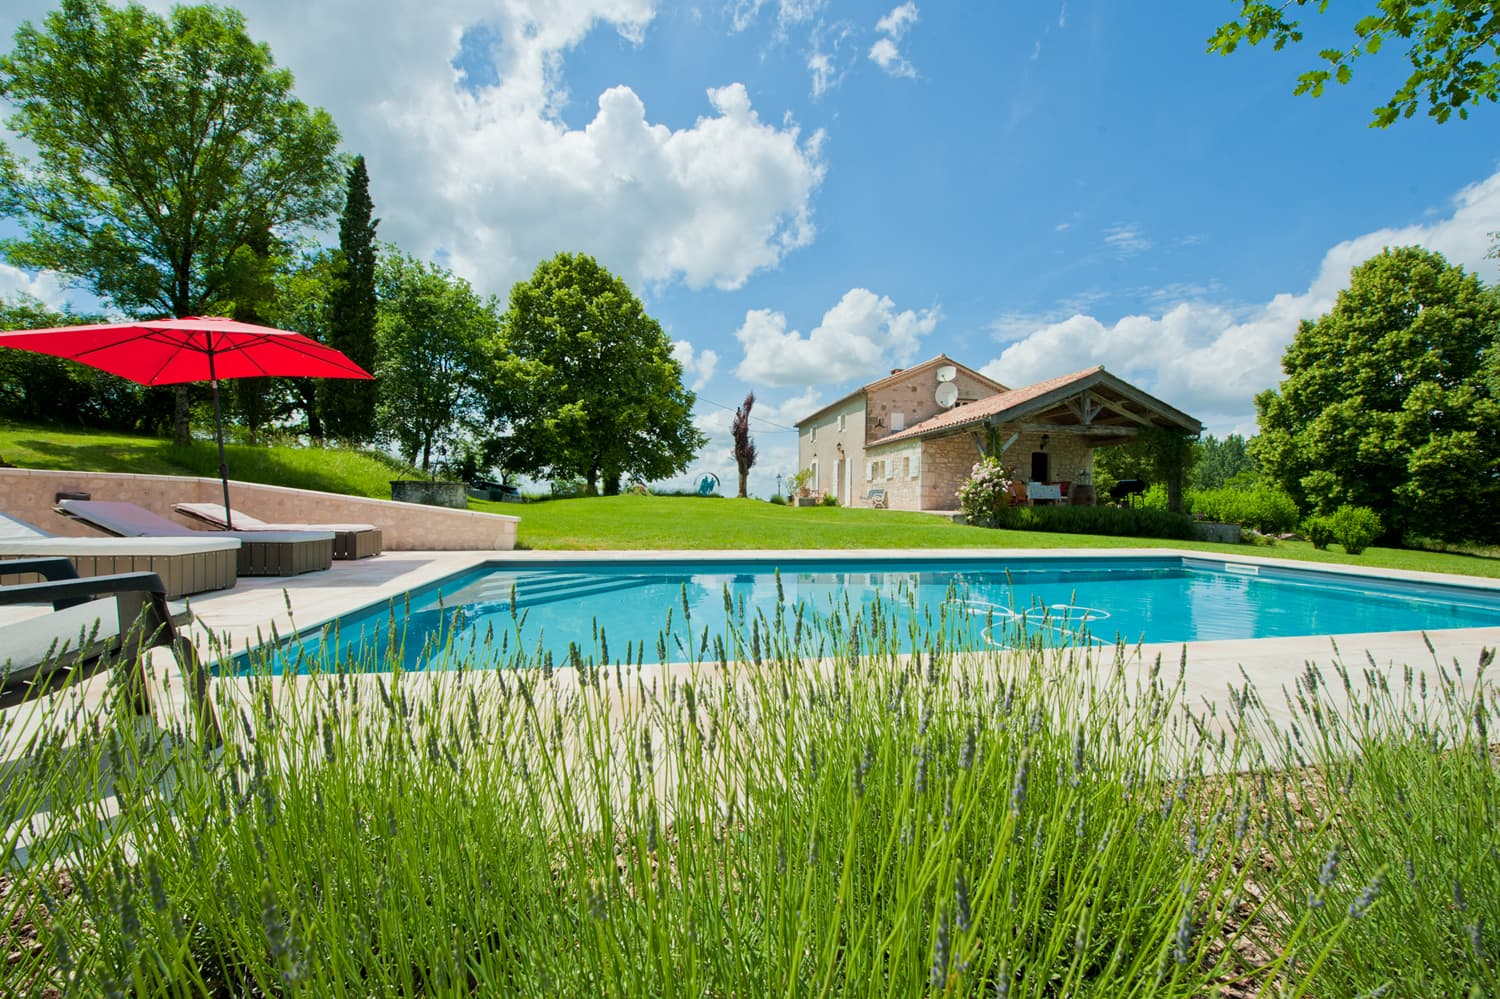 Holiday rental home in South-West France with private swimming pool | Maison Douzains